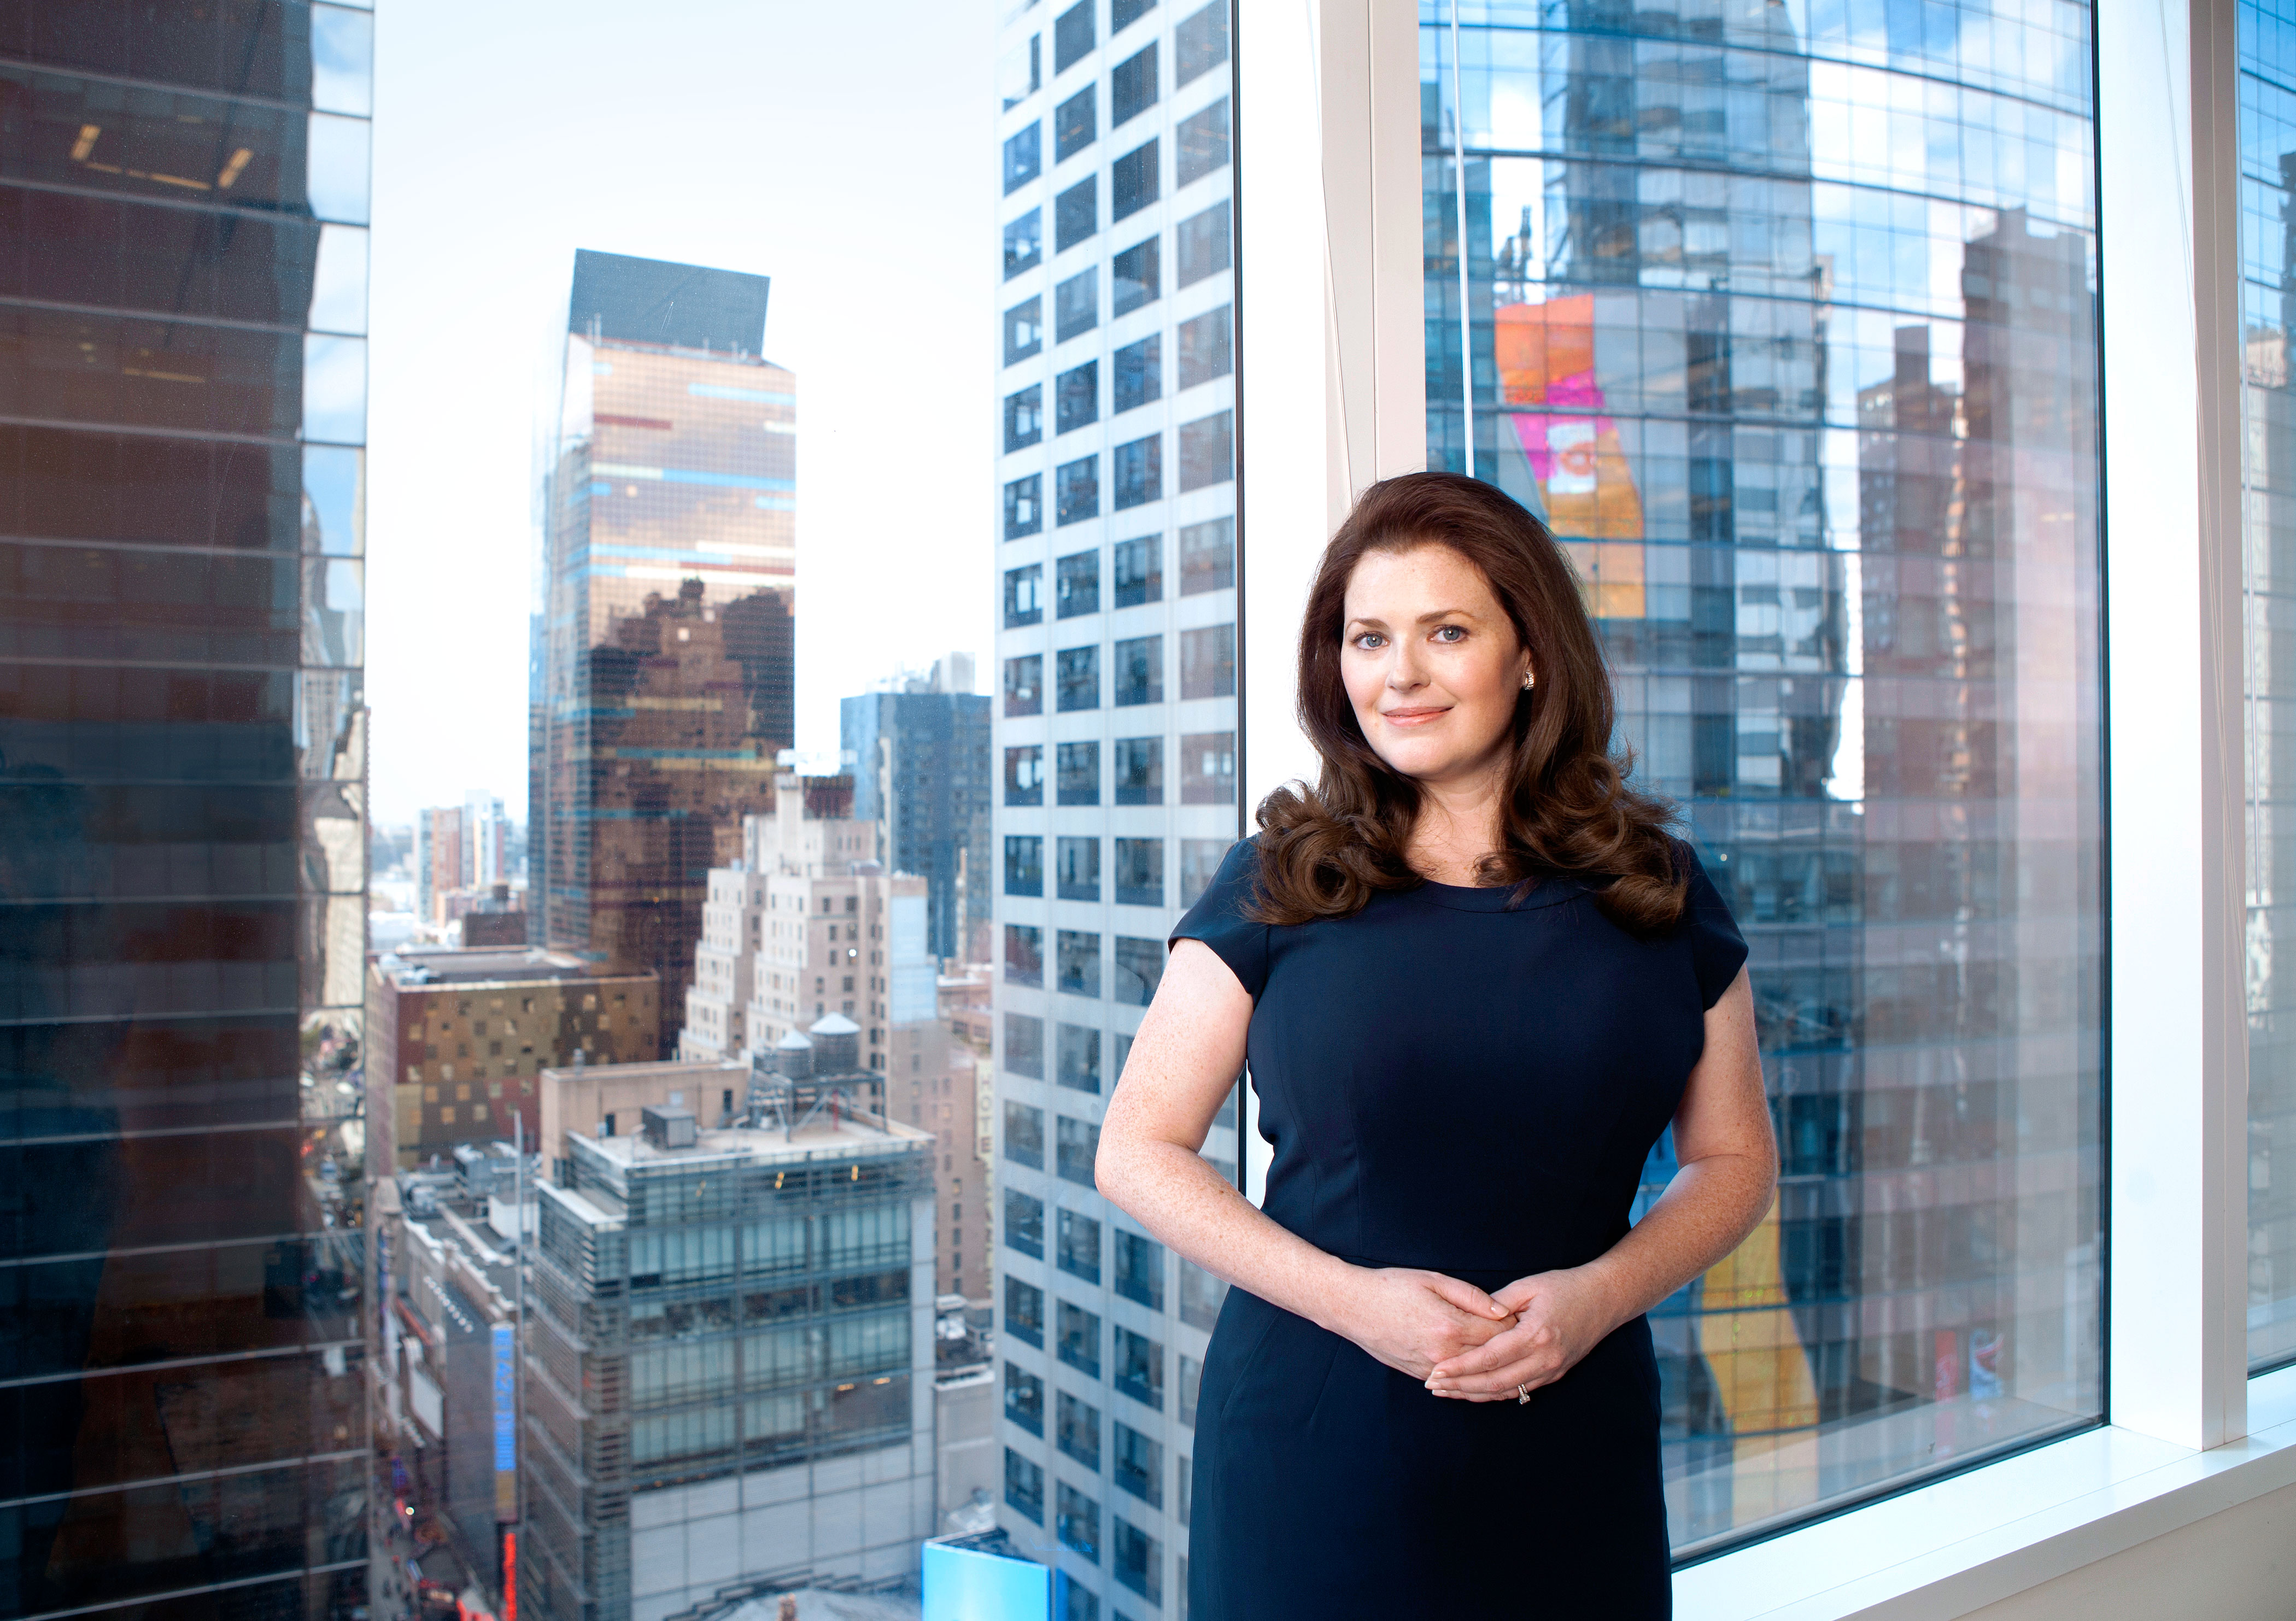 Dianne McKeever got her start arbitraging candy bars in seventh grade and is an avid videogamer. Her activist fund, Ides Capital, is now shaking up small-cap companies.